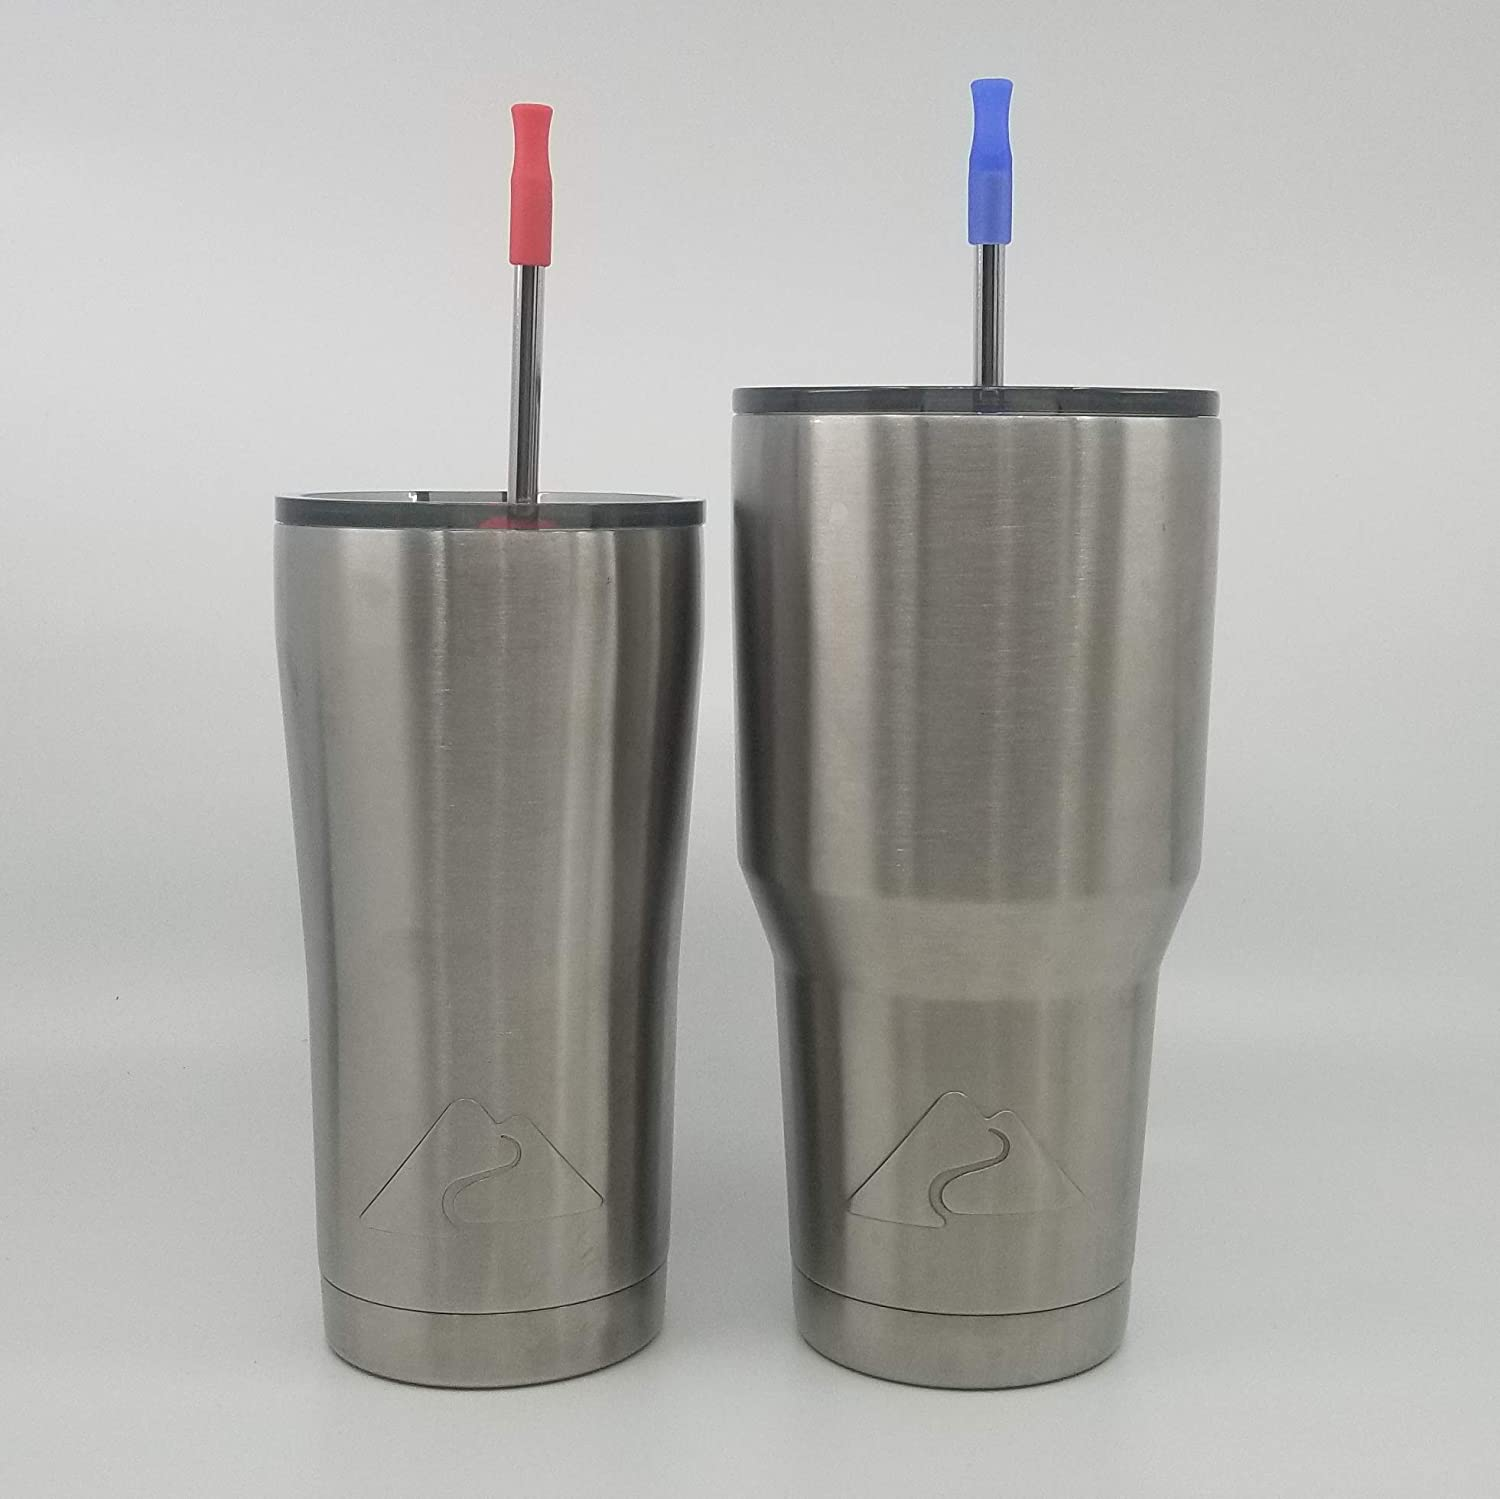 Custom Inscribed Stainless Steel Drinking Straws | Set of 2